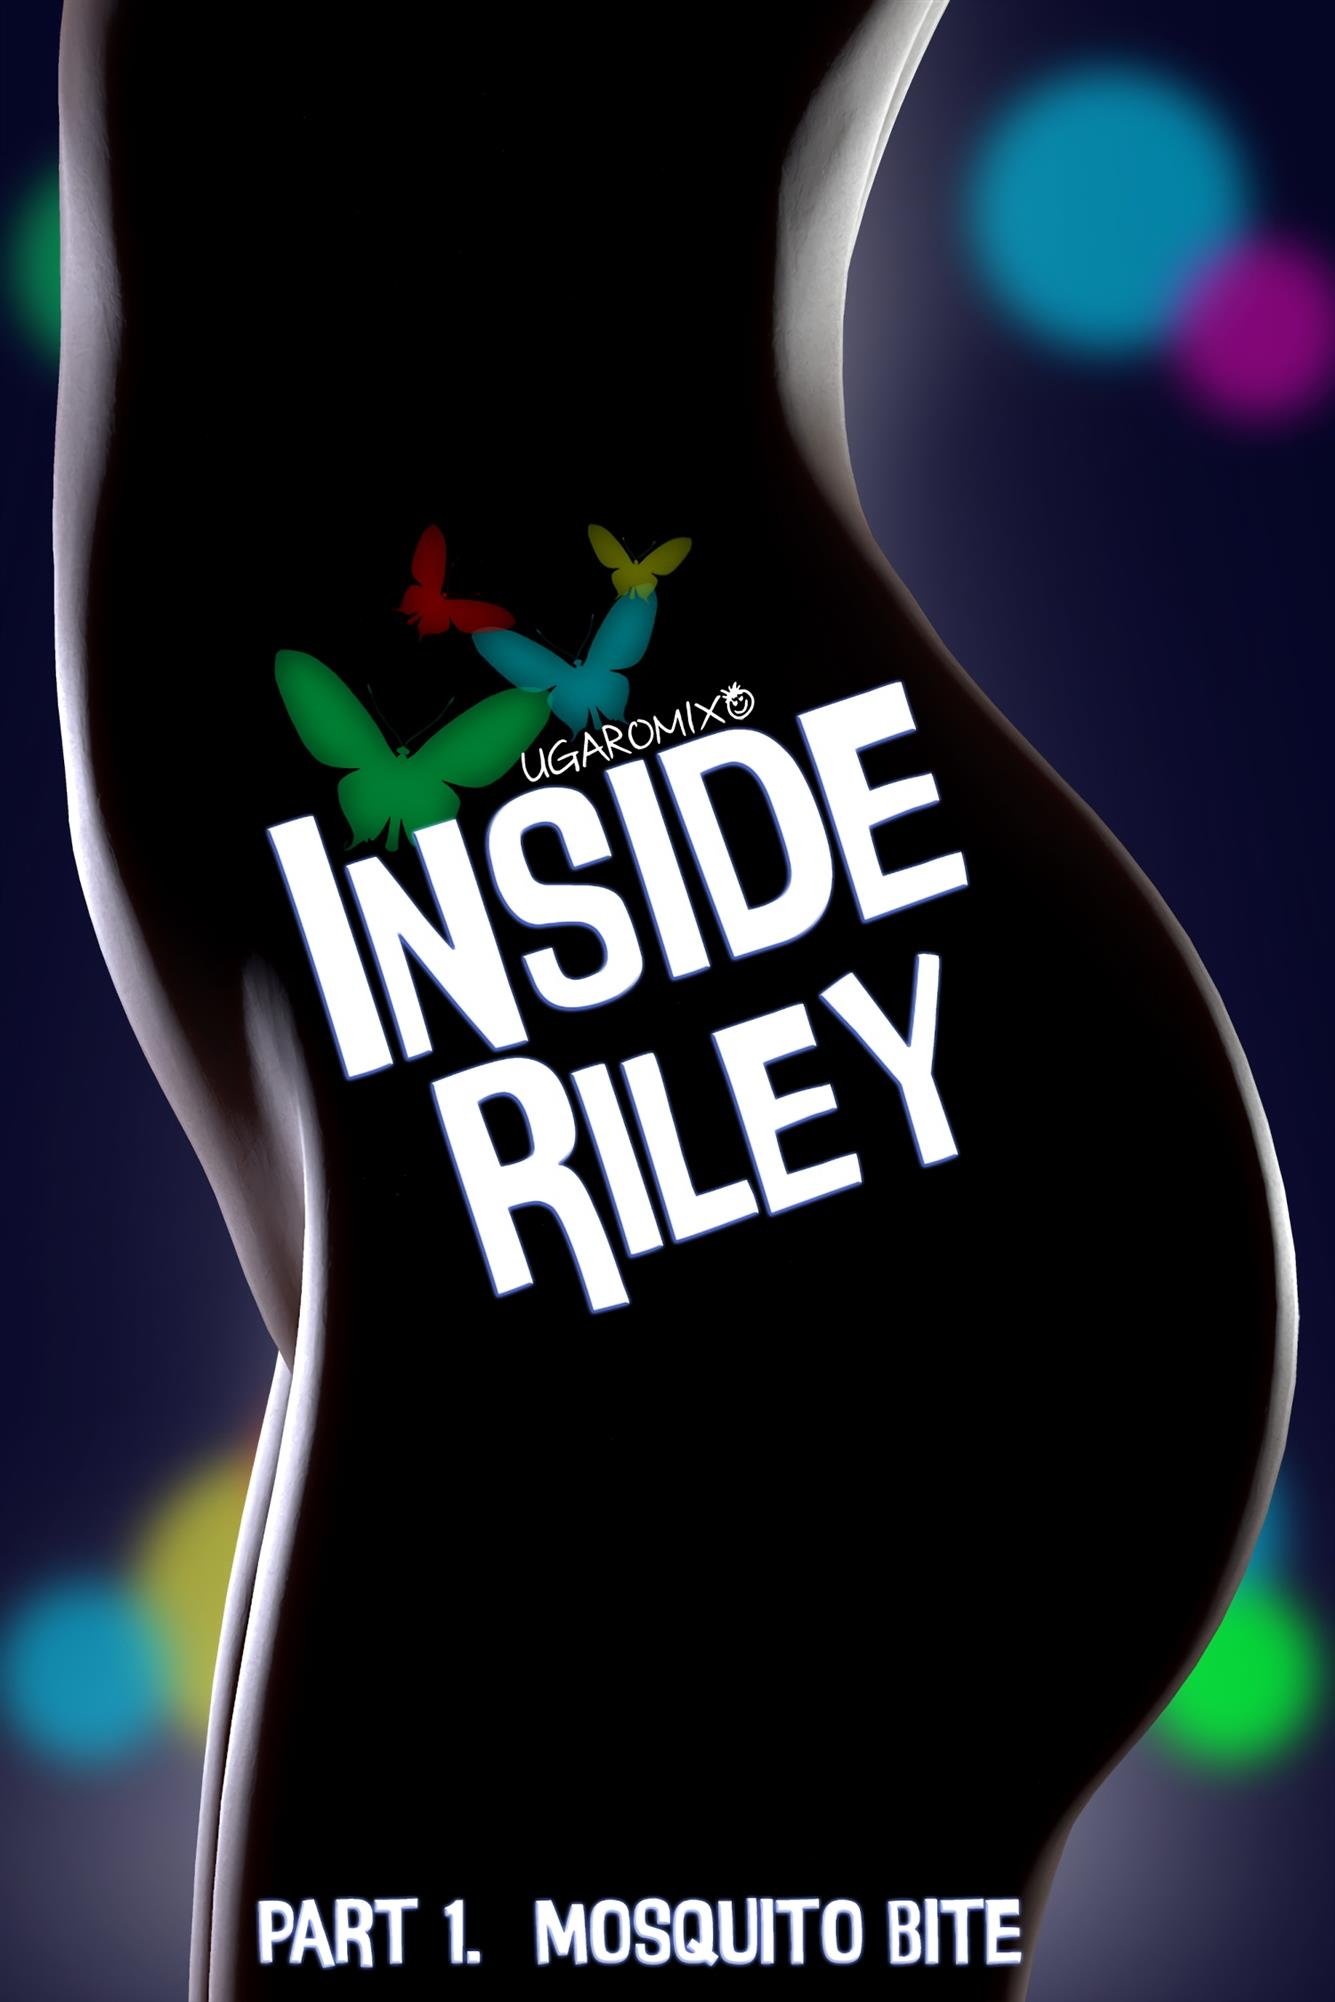 Inside Riley Part 1 – Mosquito Bite (Inside Out) [Ugaromix]